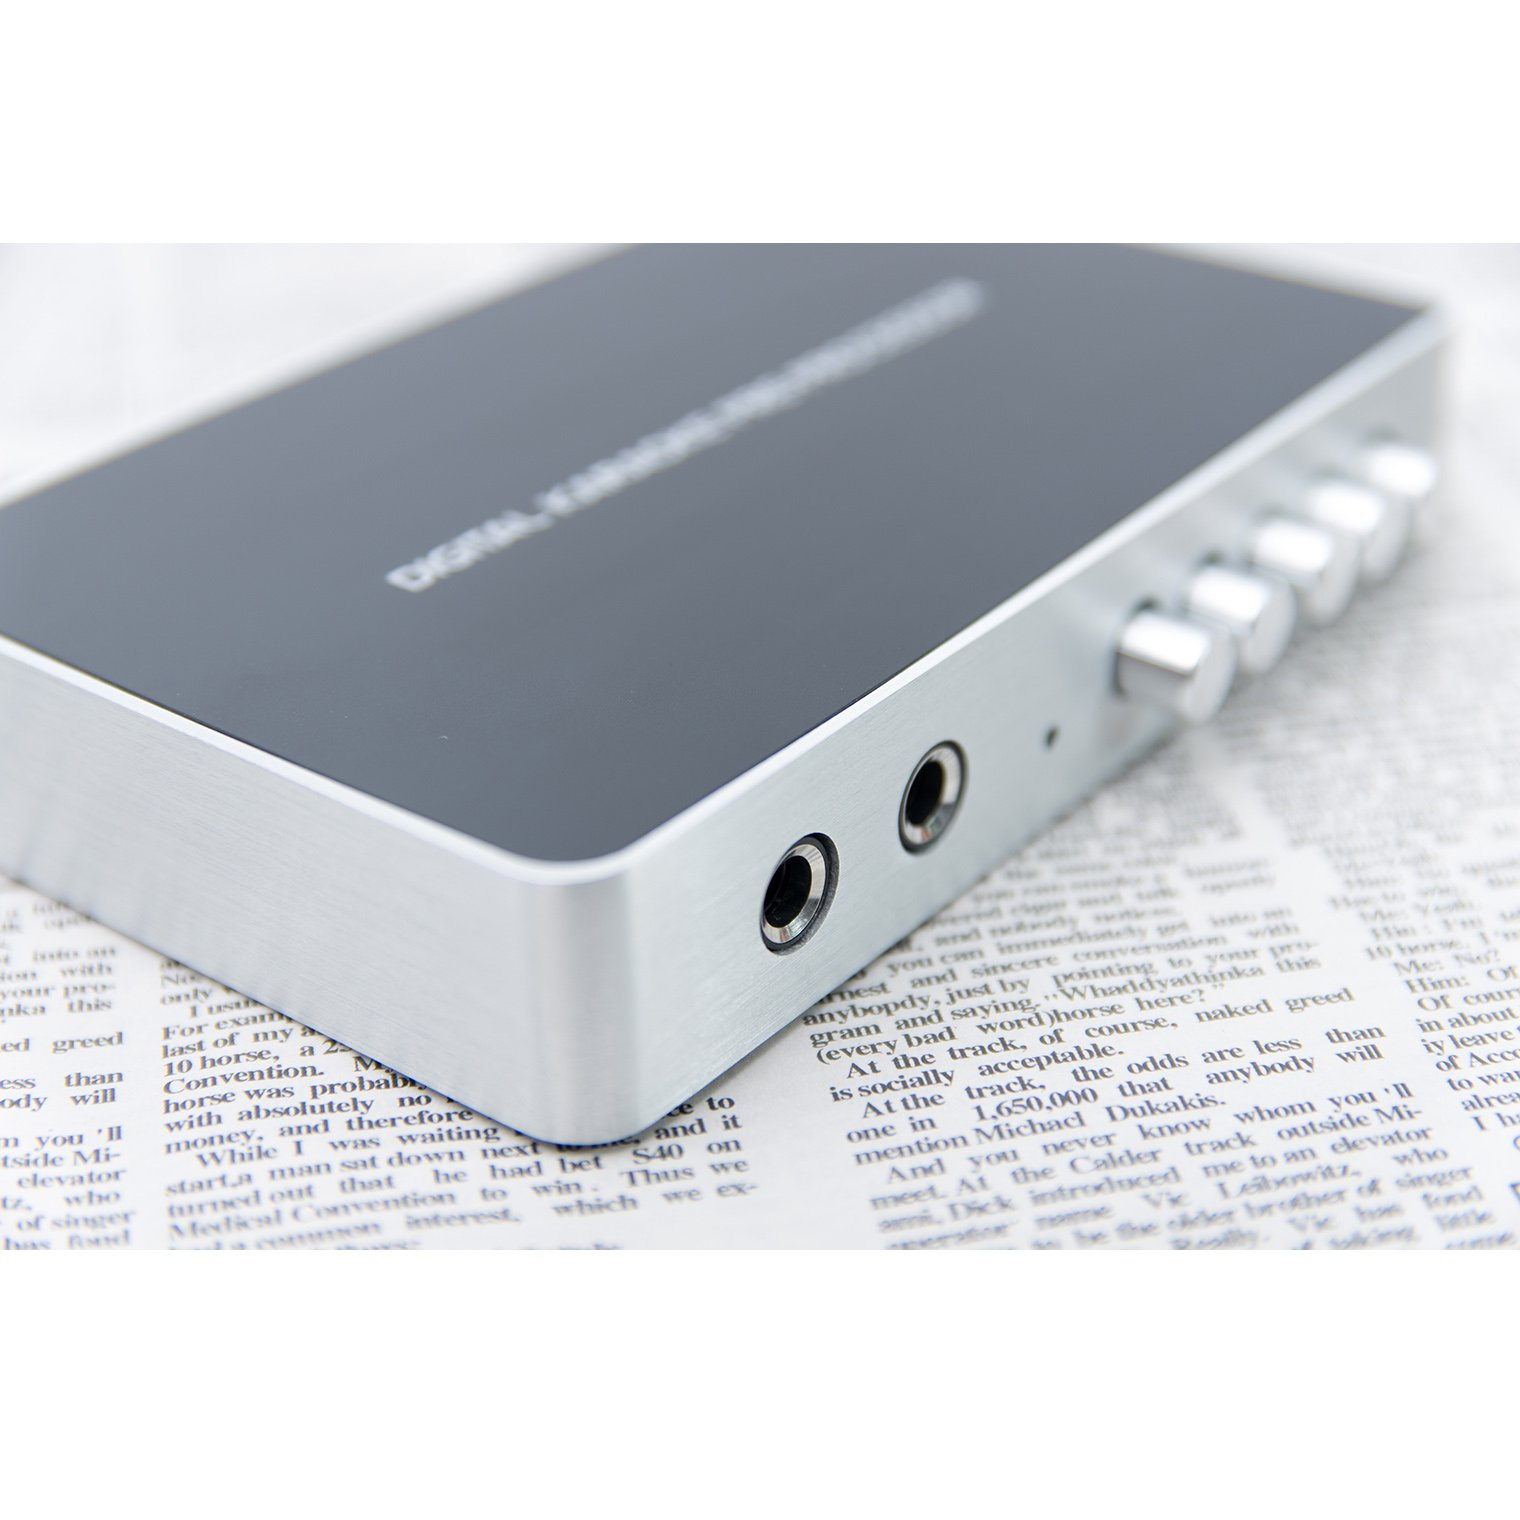 PERSUNNY Karaoke Mate Mixer Amplifier ECHO Machines System - Sing A Song From Your Android TV PC,Computer Wtih HDMI Slot Karaoke Machine by PERSUNNY